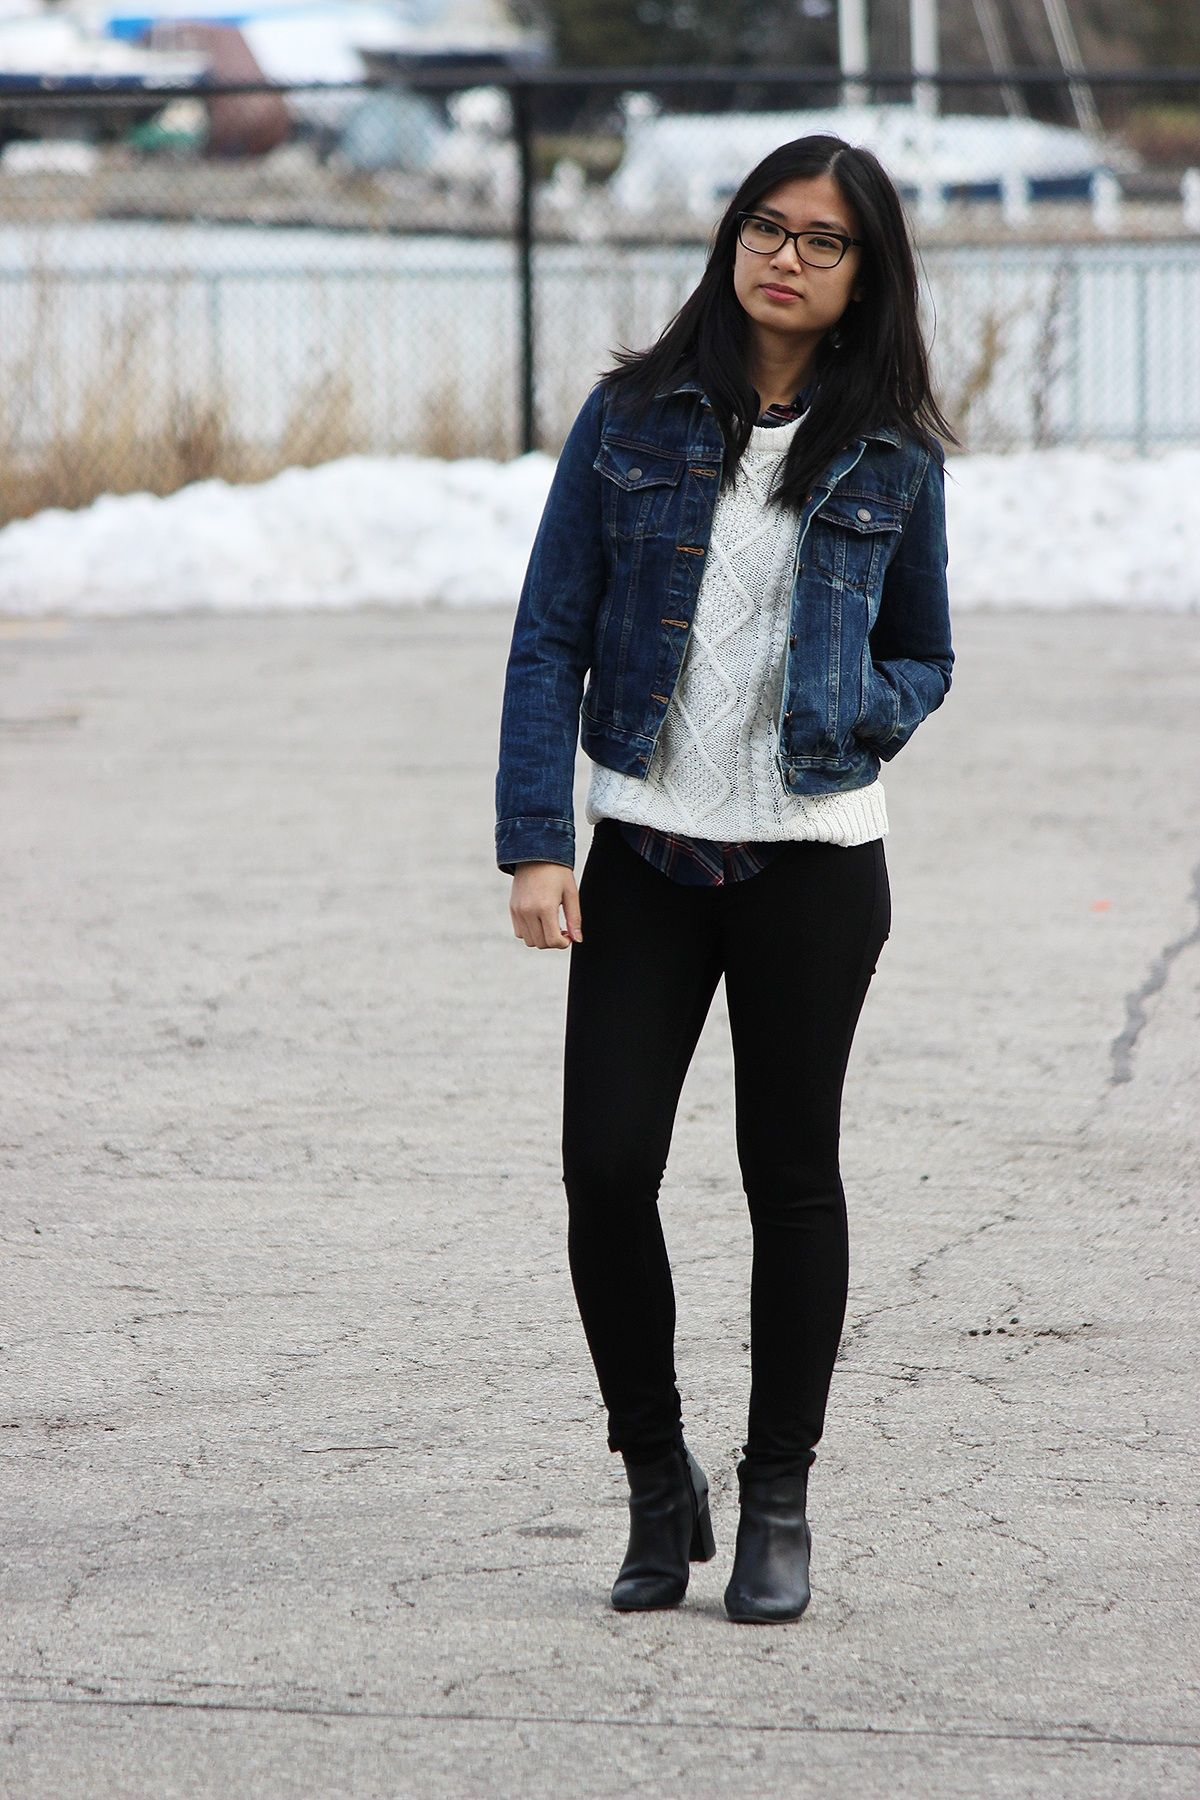 17 Best images about personal style on Pinterest | Black blazers ...